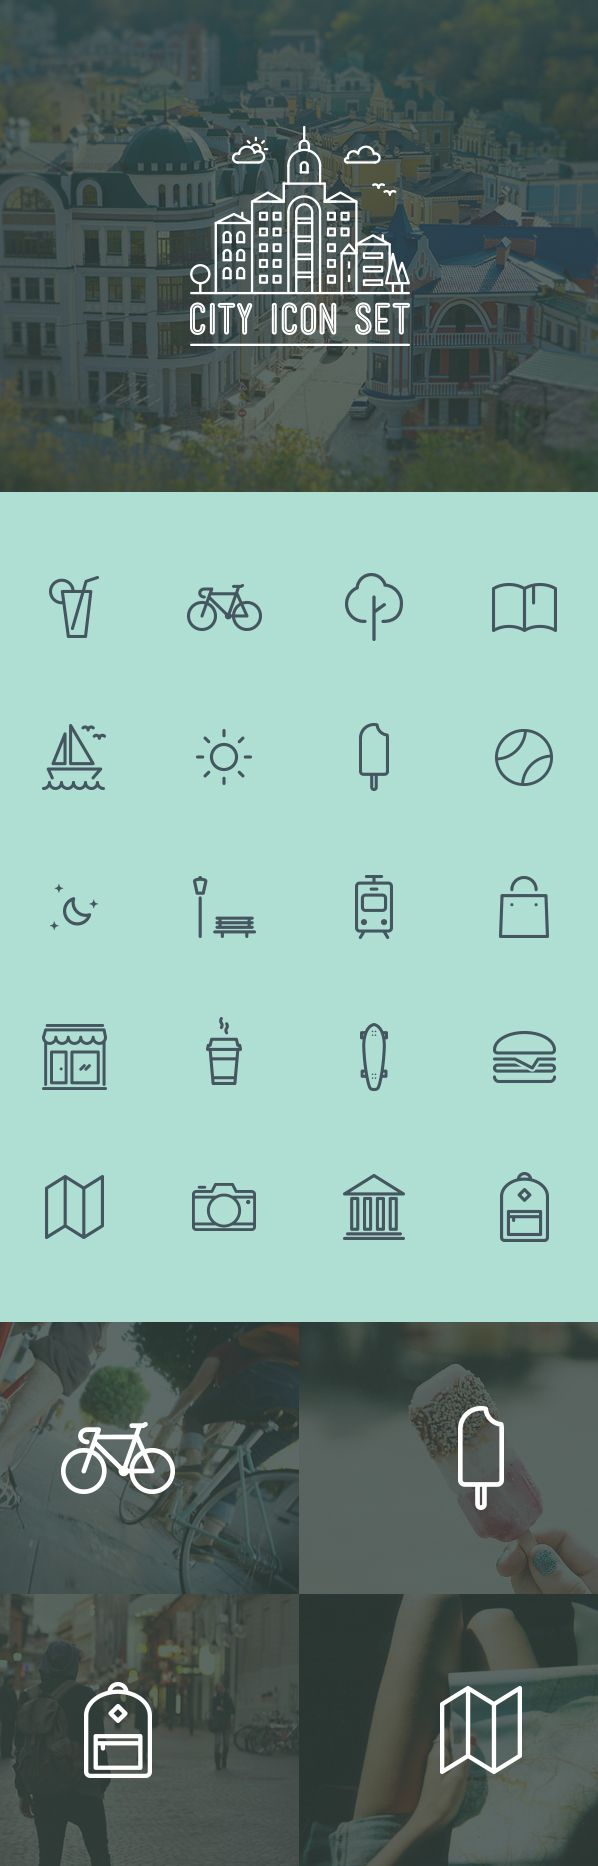 City icon set by Eugene Maksymchuk, #icon #design - Love the line drawing and simplicity